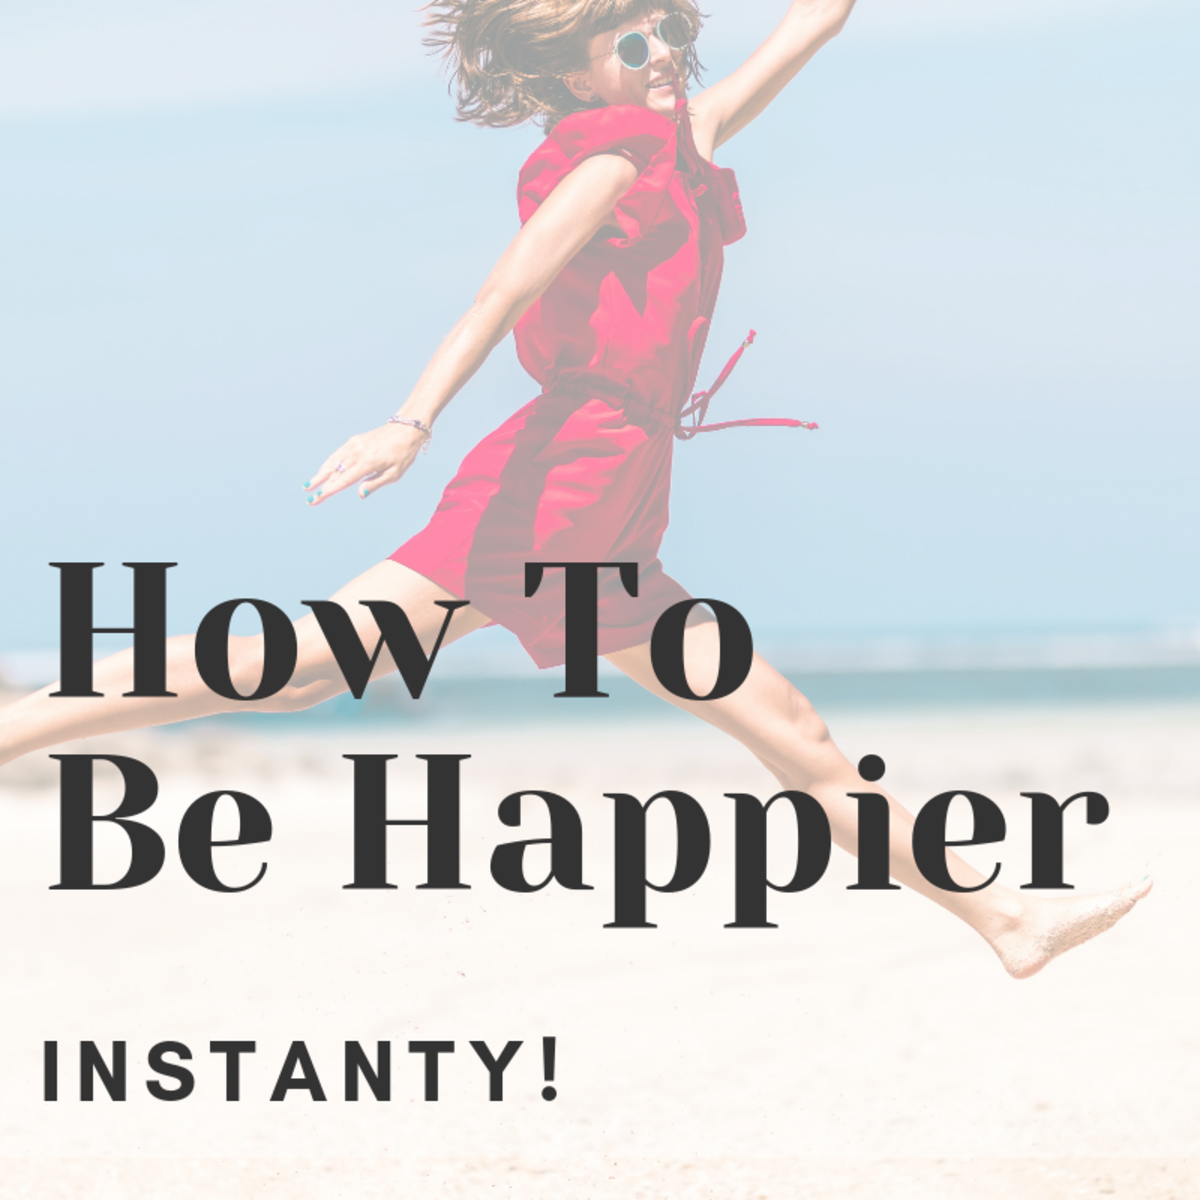 Easy and Scientifically Proven Ways You Can Improve Your Mood Instantly